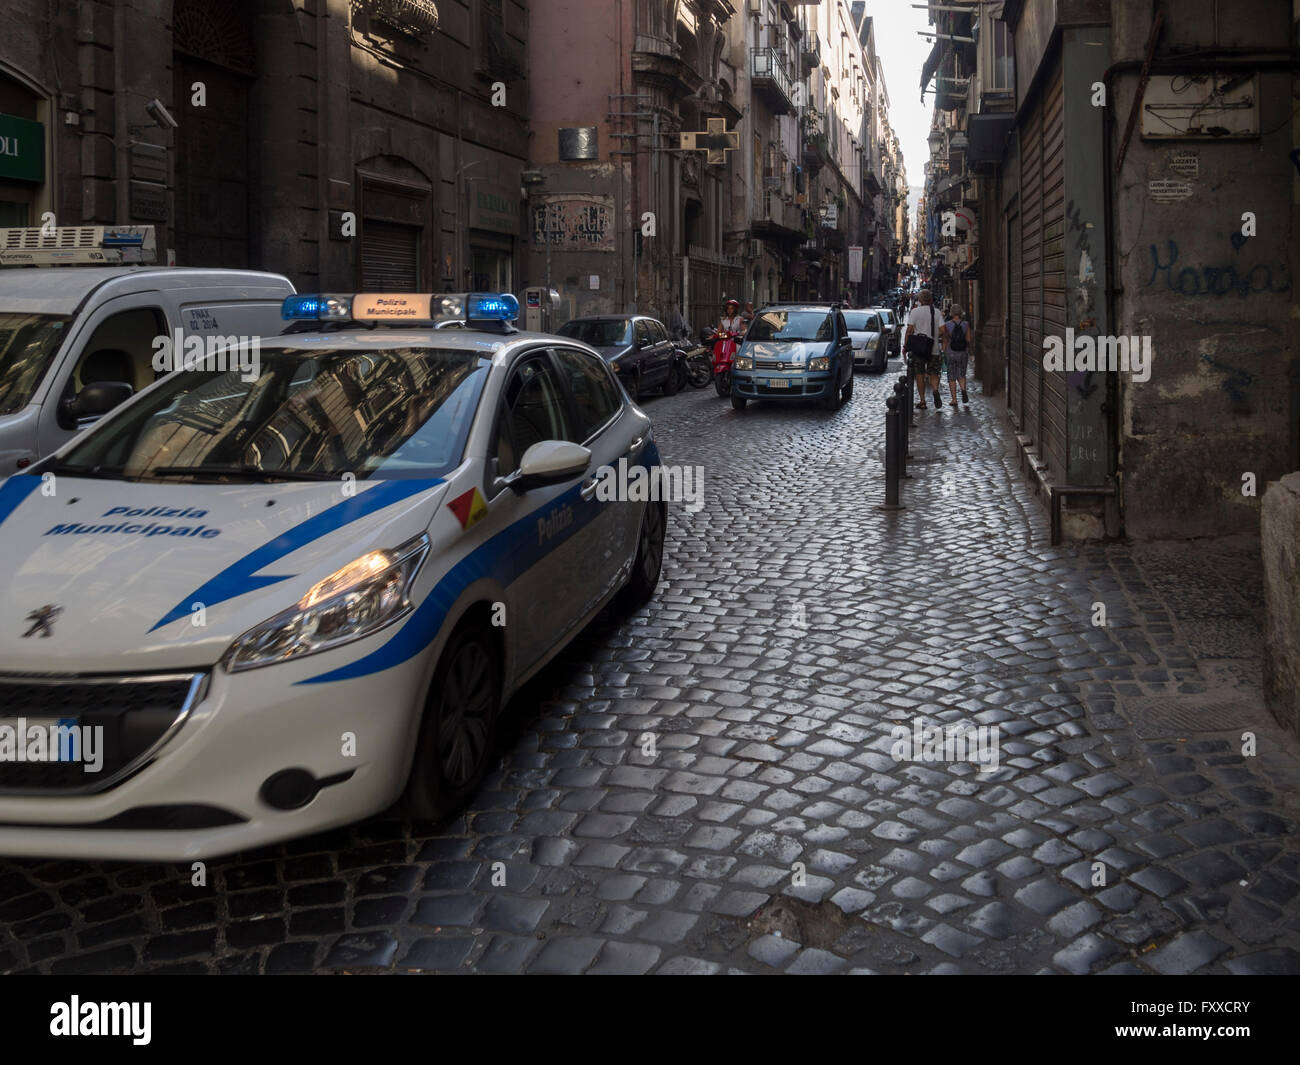 Street View Of Naples, Italy With Police Car In The. Northwestern Life Insurance Colleges In Penn. Colleges In Key West Florida. Groupwise To Exchange Migration Tool. How To Be A School Psychologist. Marketing Automation System Sun Area Vo Tech. Att Conference Call Service Student On Line. West Virginia University History Department. How Often To Clean Dryer Vent